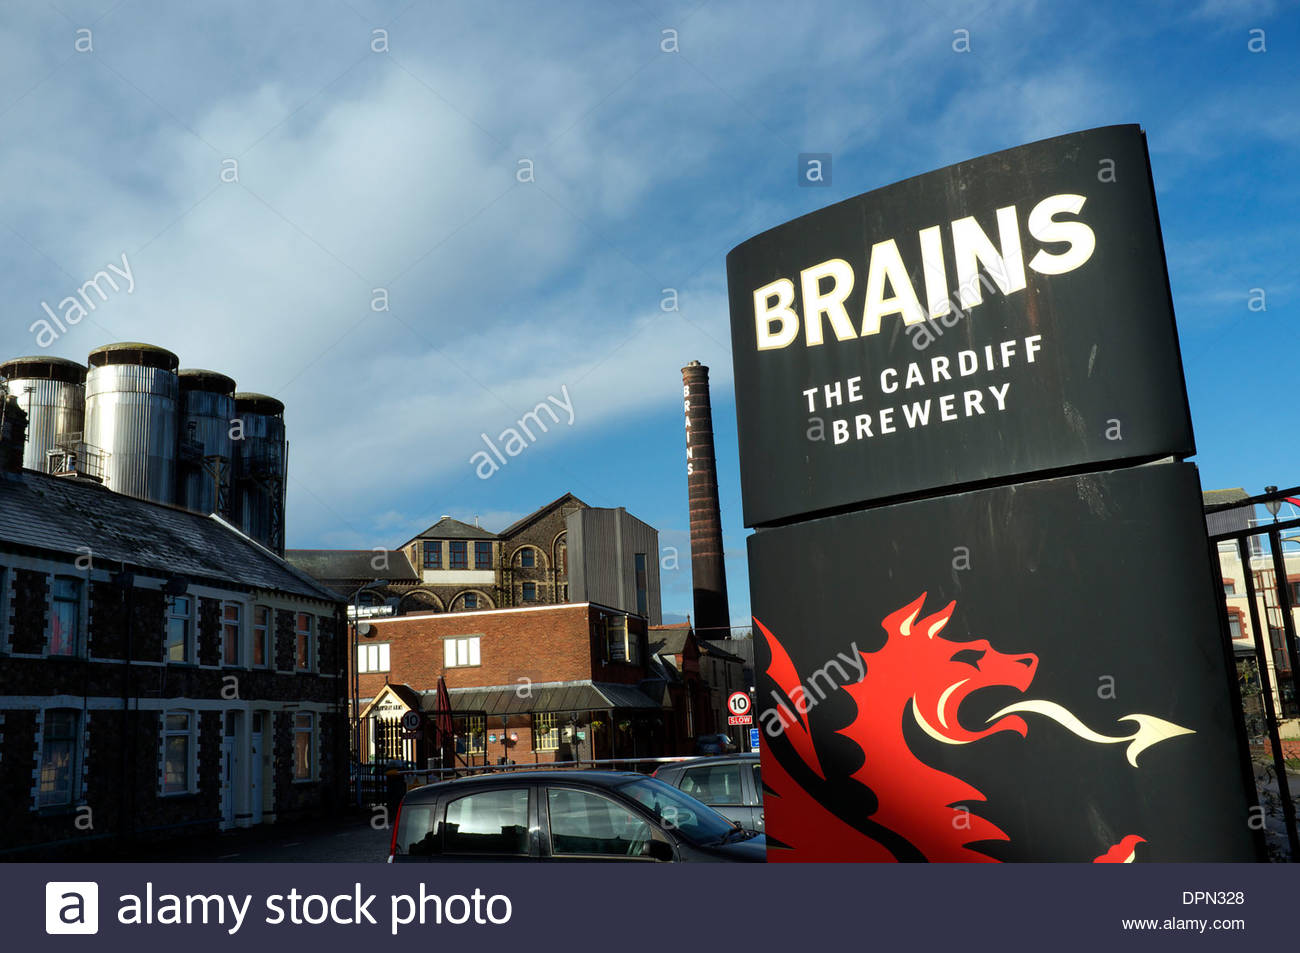 Brains, the factory premises of the Cardiff brewery, with the sign written chimney stack visible in the background. Cardiff, UK. - Stock Image